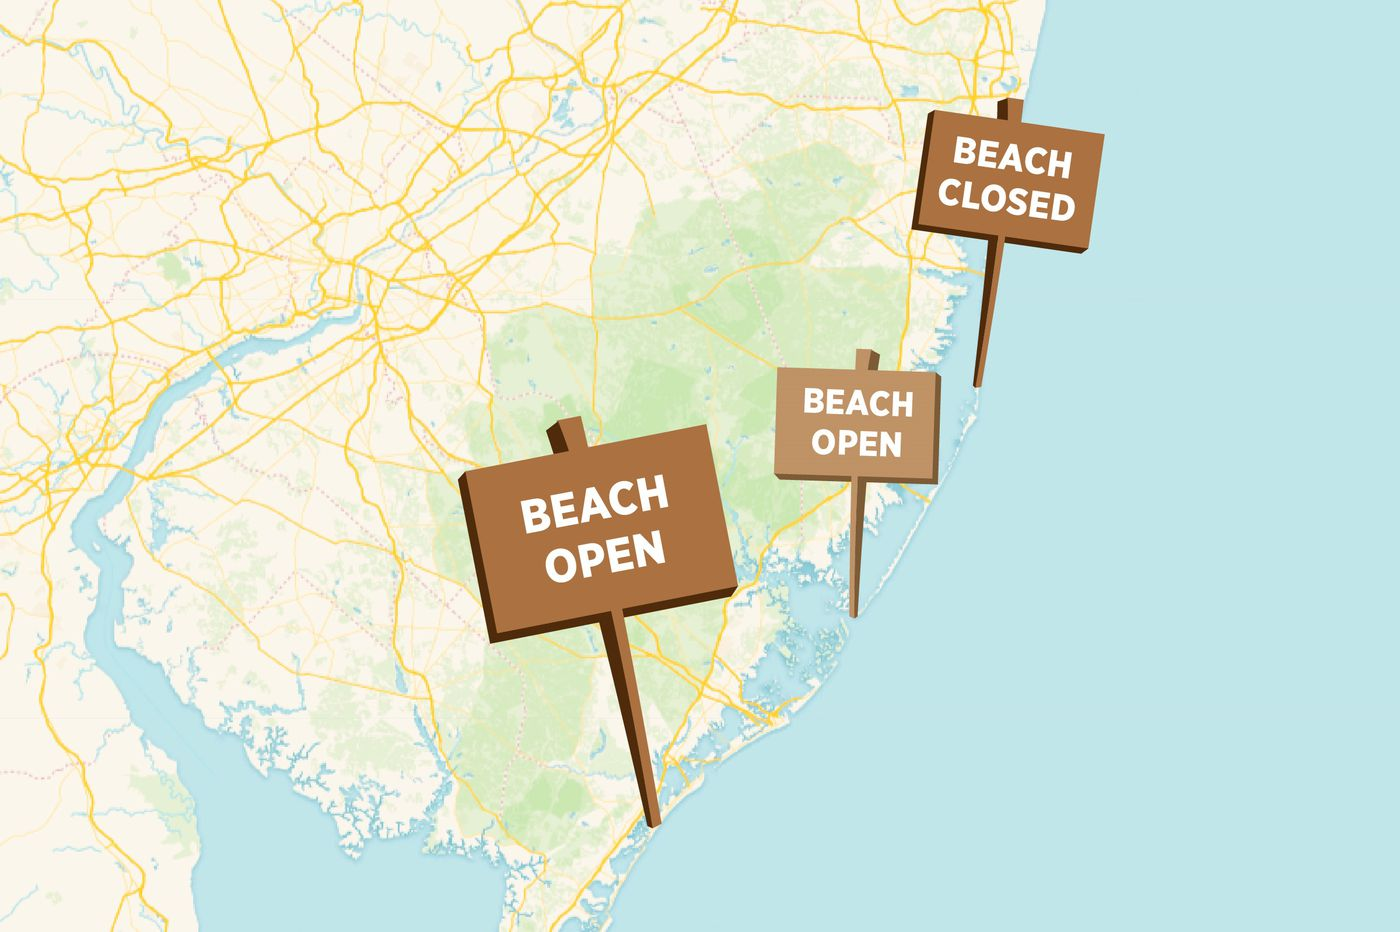 Get to the beach before summer ends, but check our beach closings map first